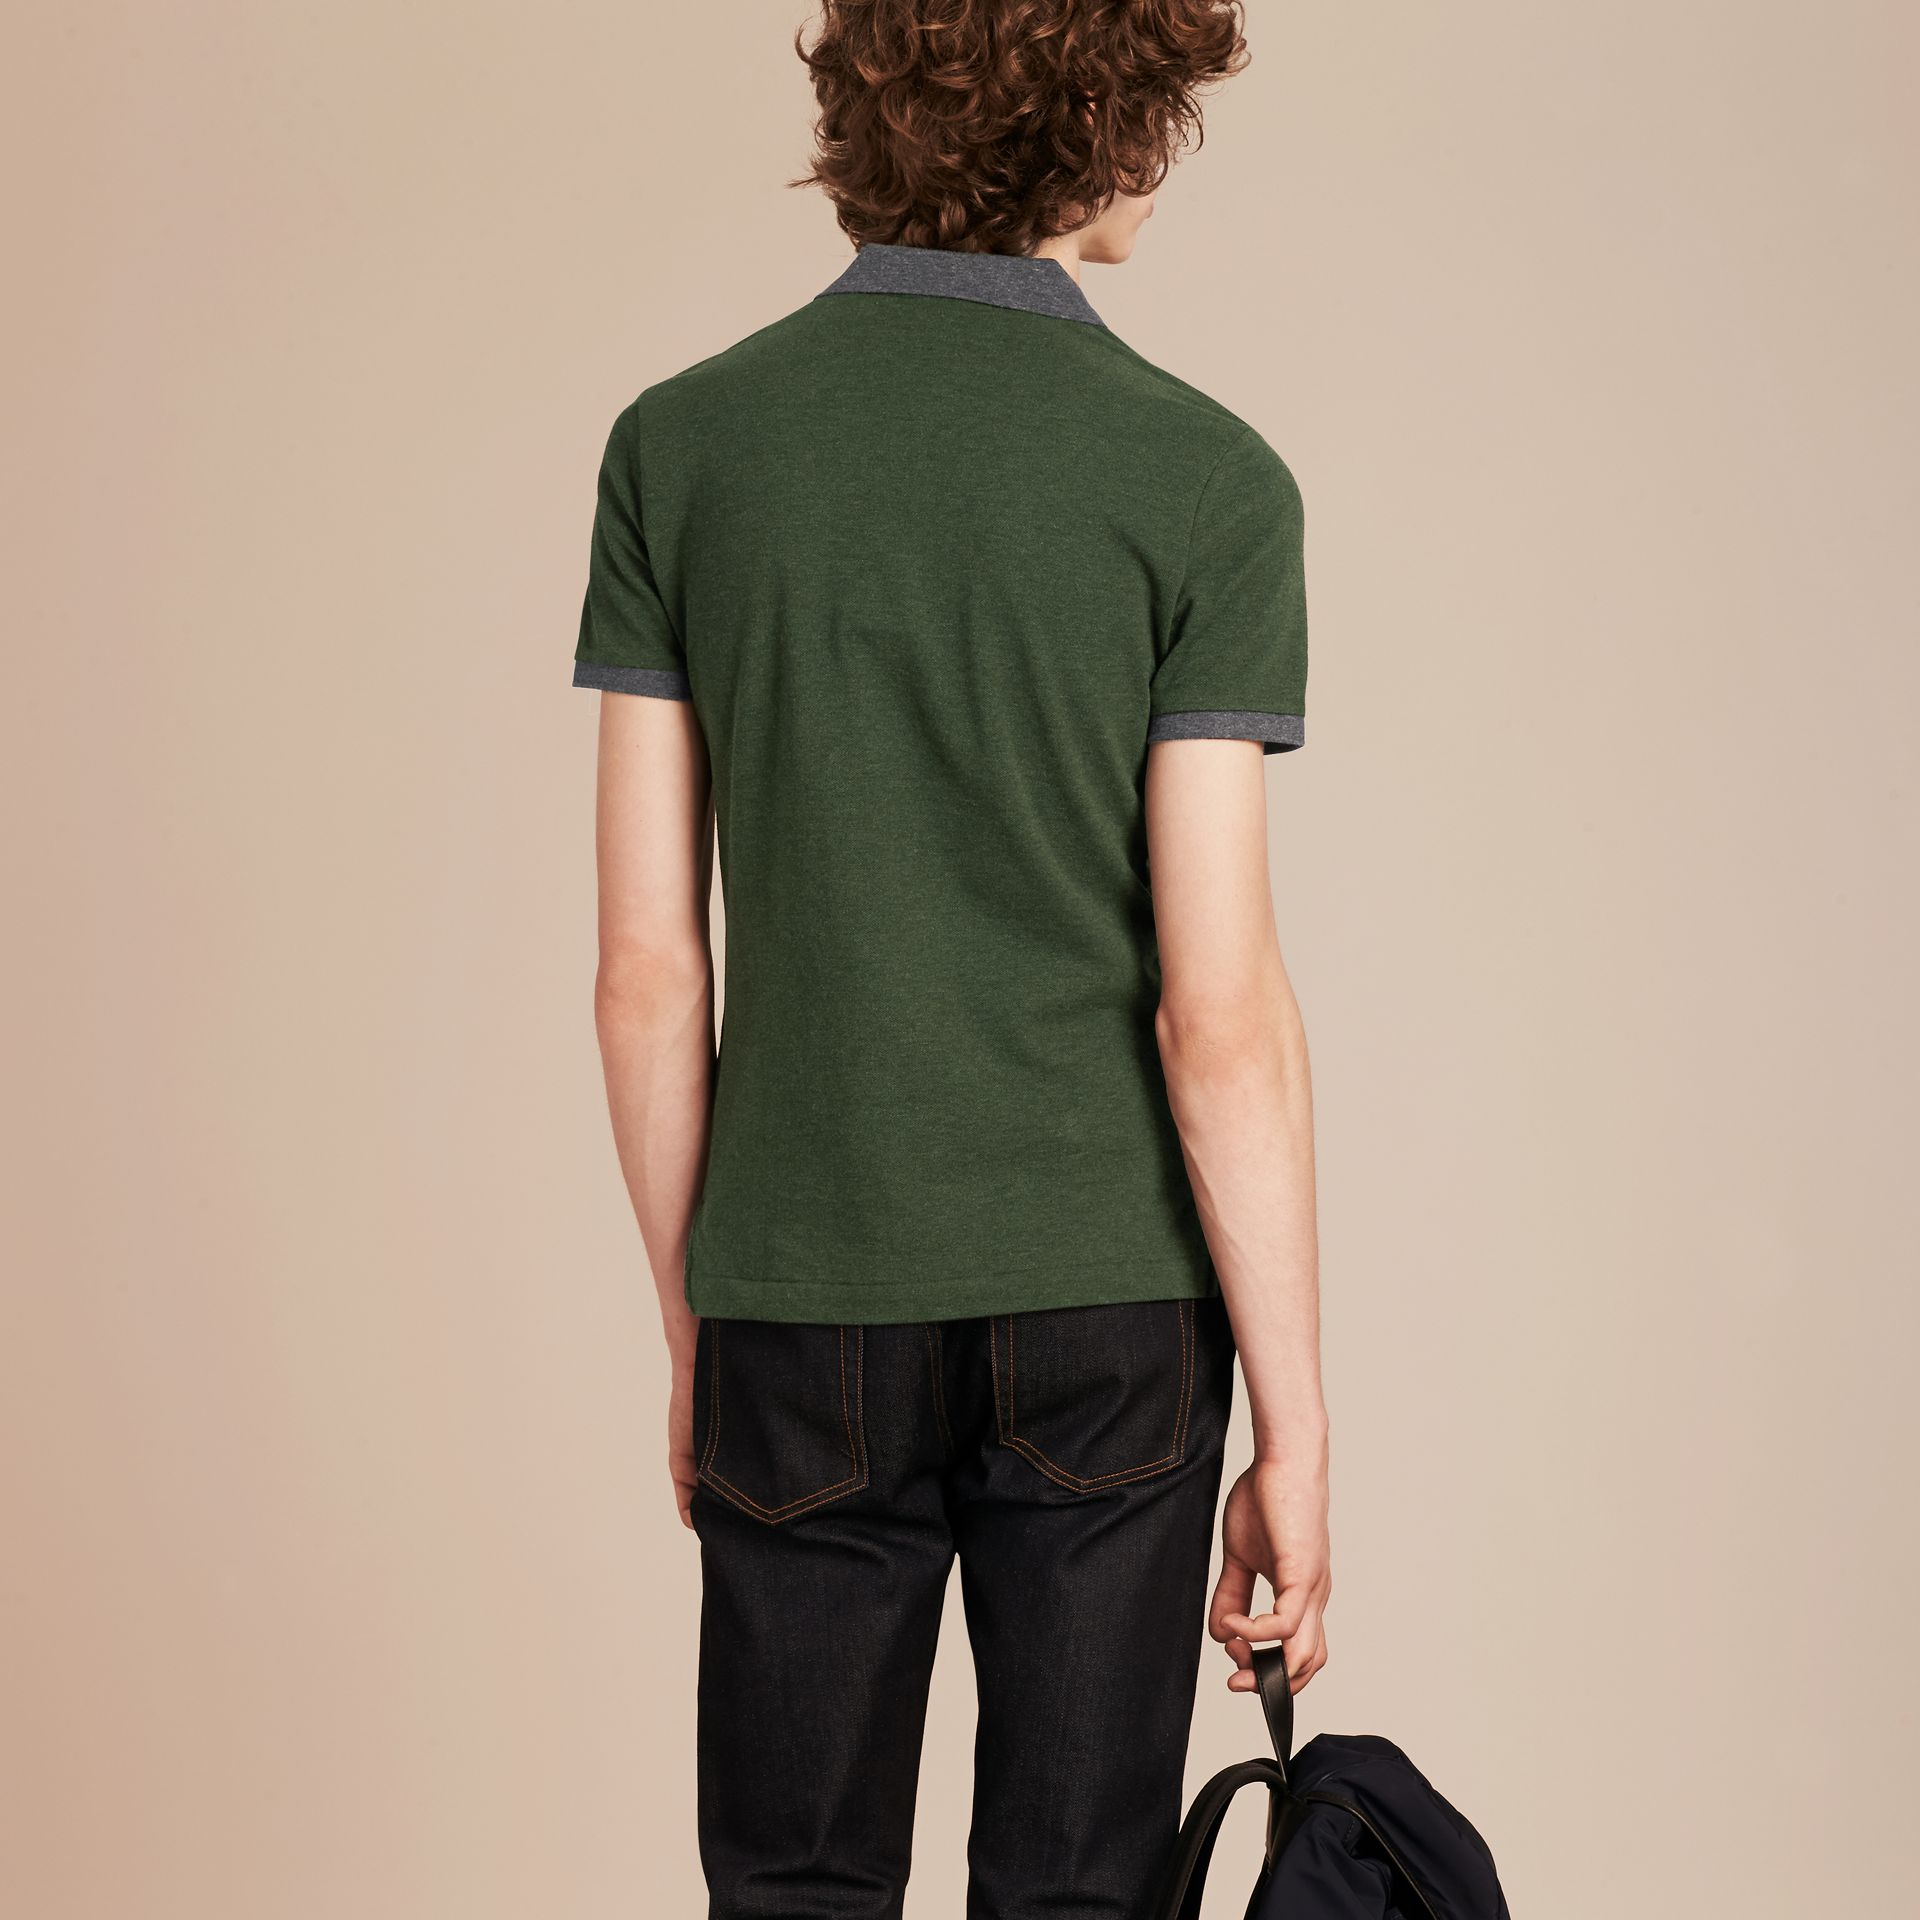 Racing green melange Contrast Colour Detail Cotton Piqué Polo Shirt Racing Green Melange - gallery image 3